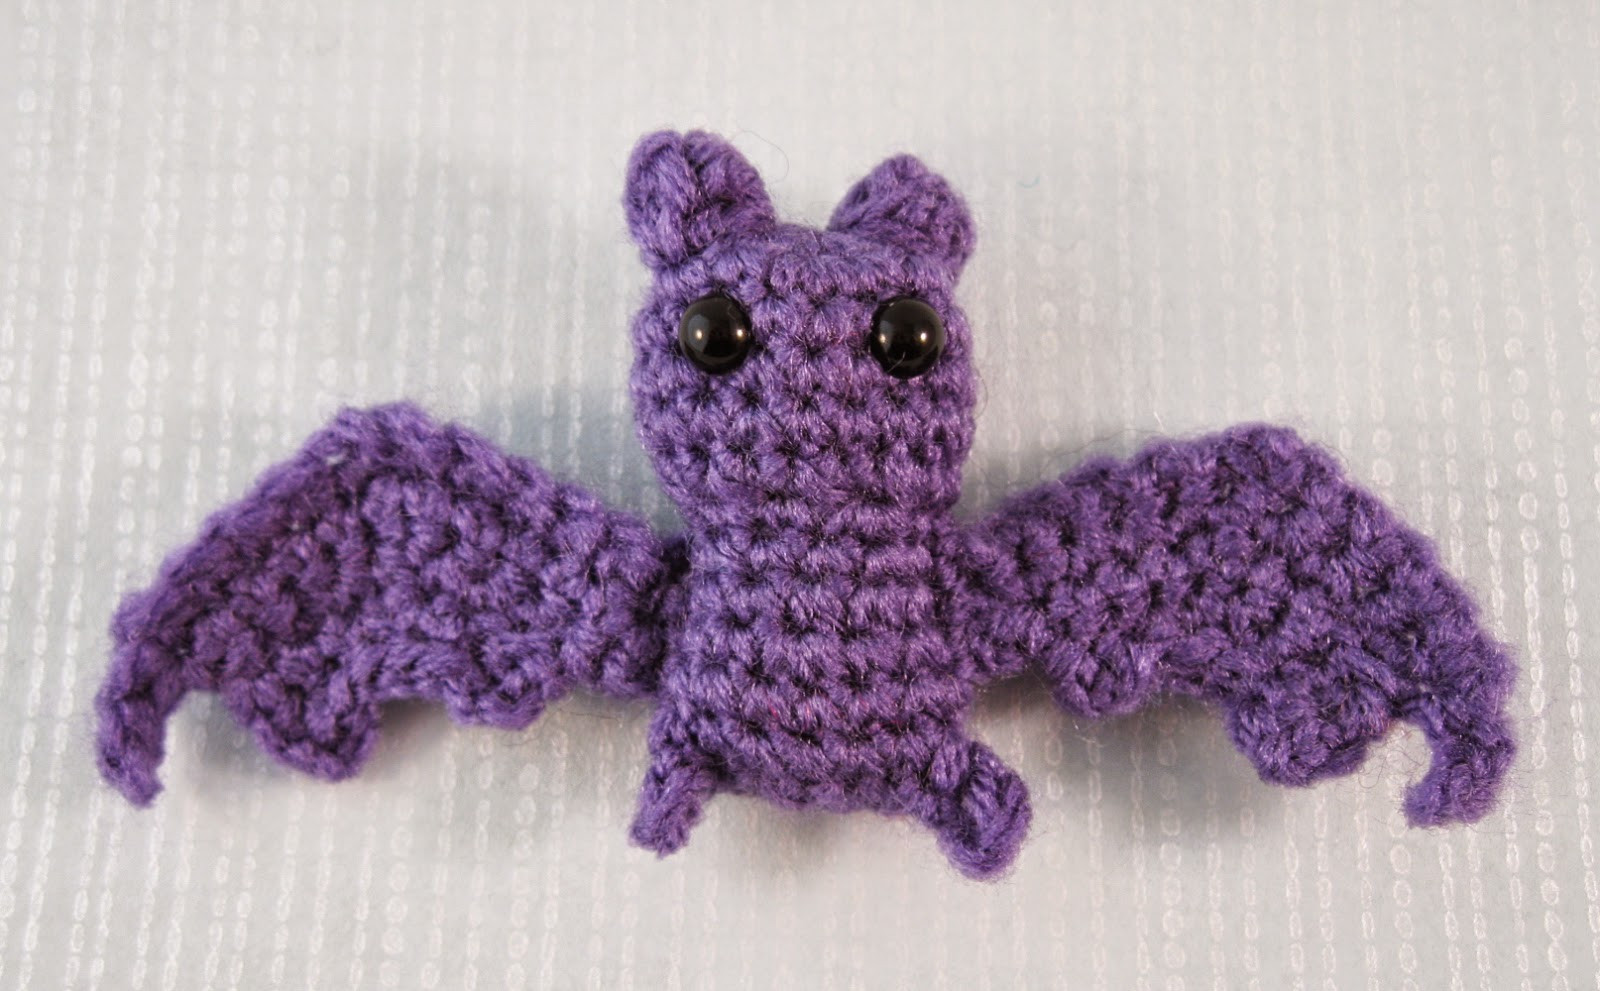 Free Crochet Bat Pattern Lovely Lucyravenscar Crochet Creatures Itty Bitty Bat Free Of Gorgeous 42 Pics Free Crochet Bat Pattern